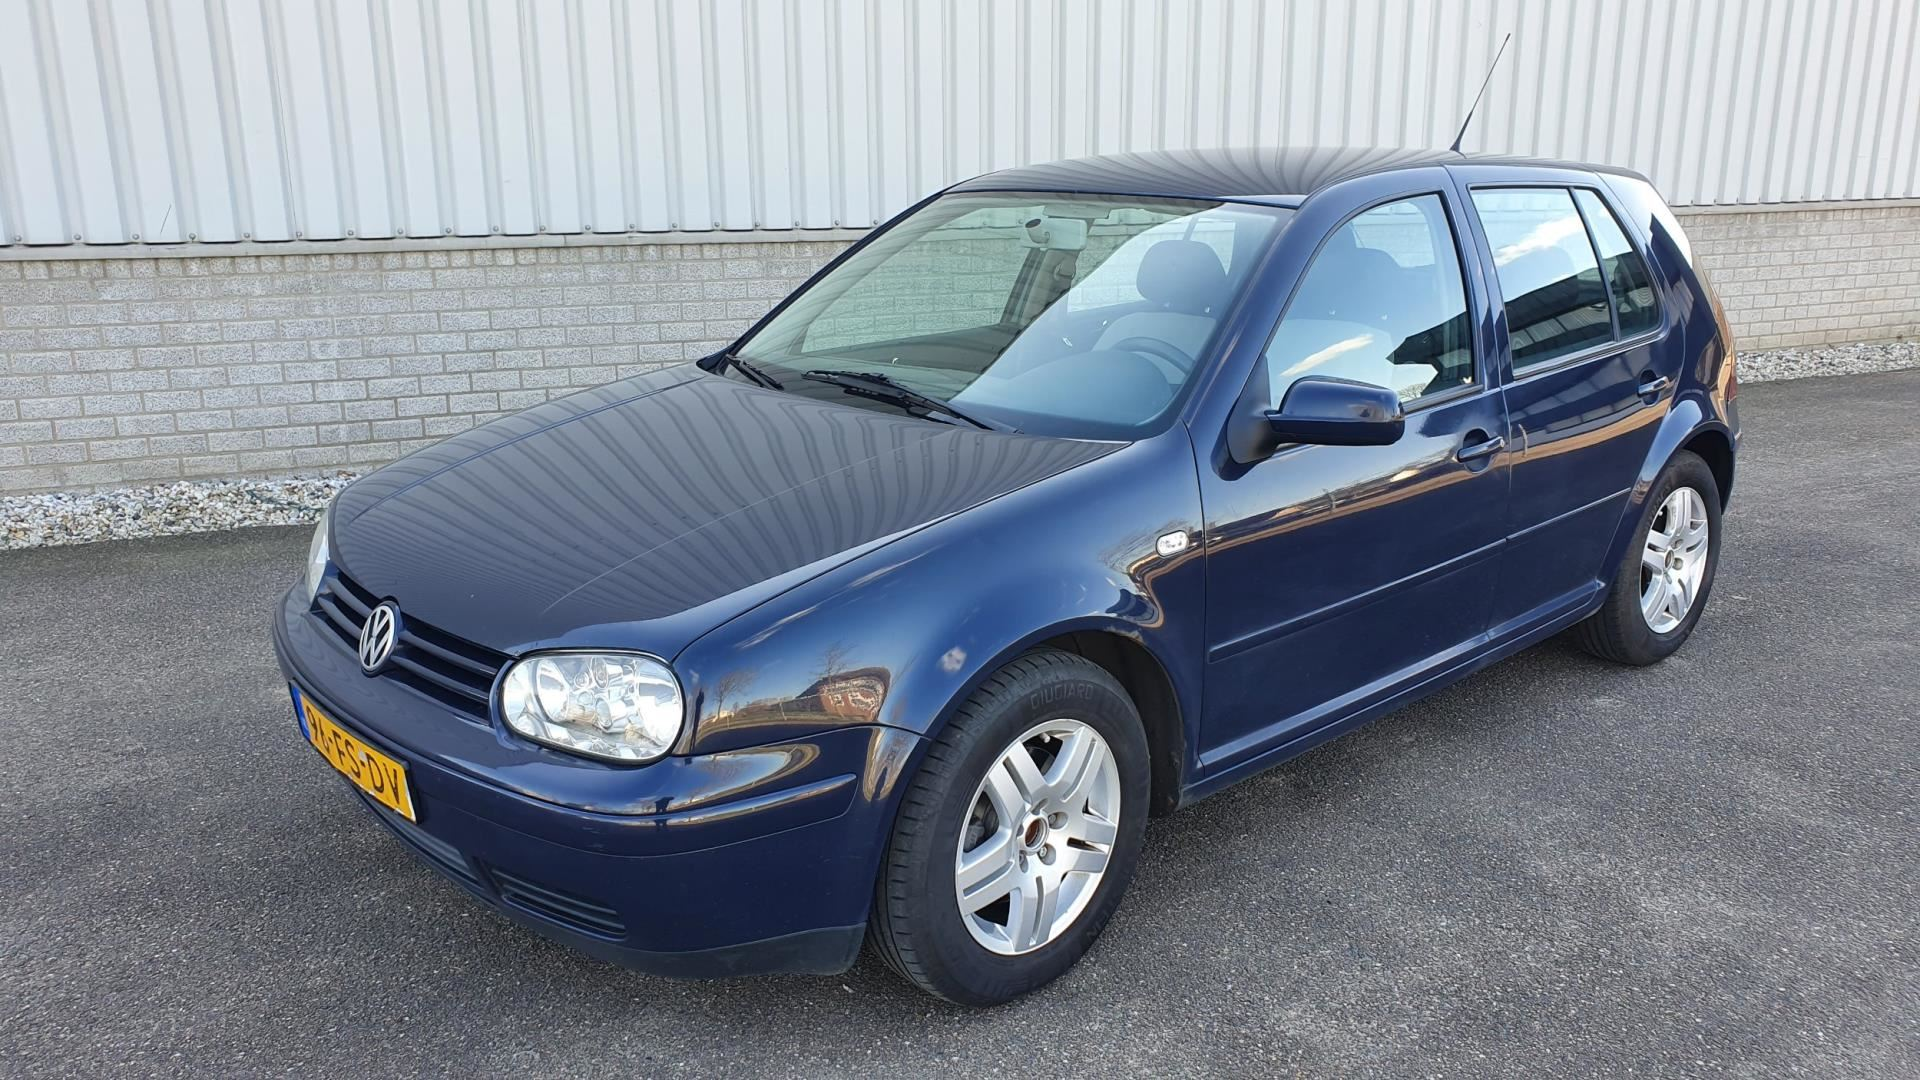 Volkswagen 1.9 TDI Highline 4Motion occasion - Terborg Auto's